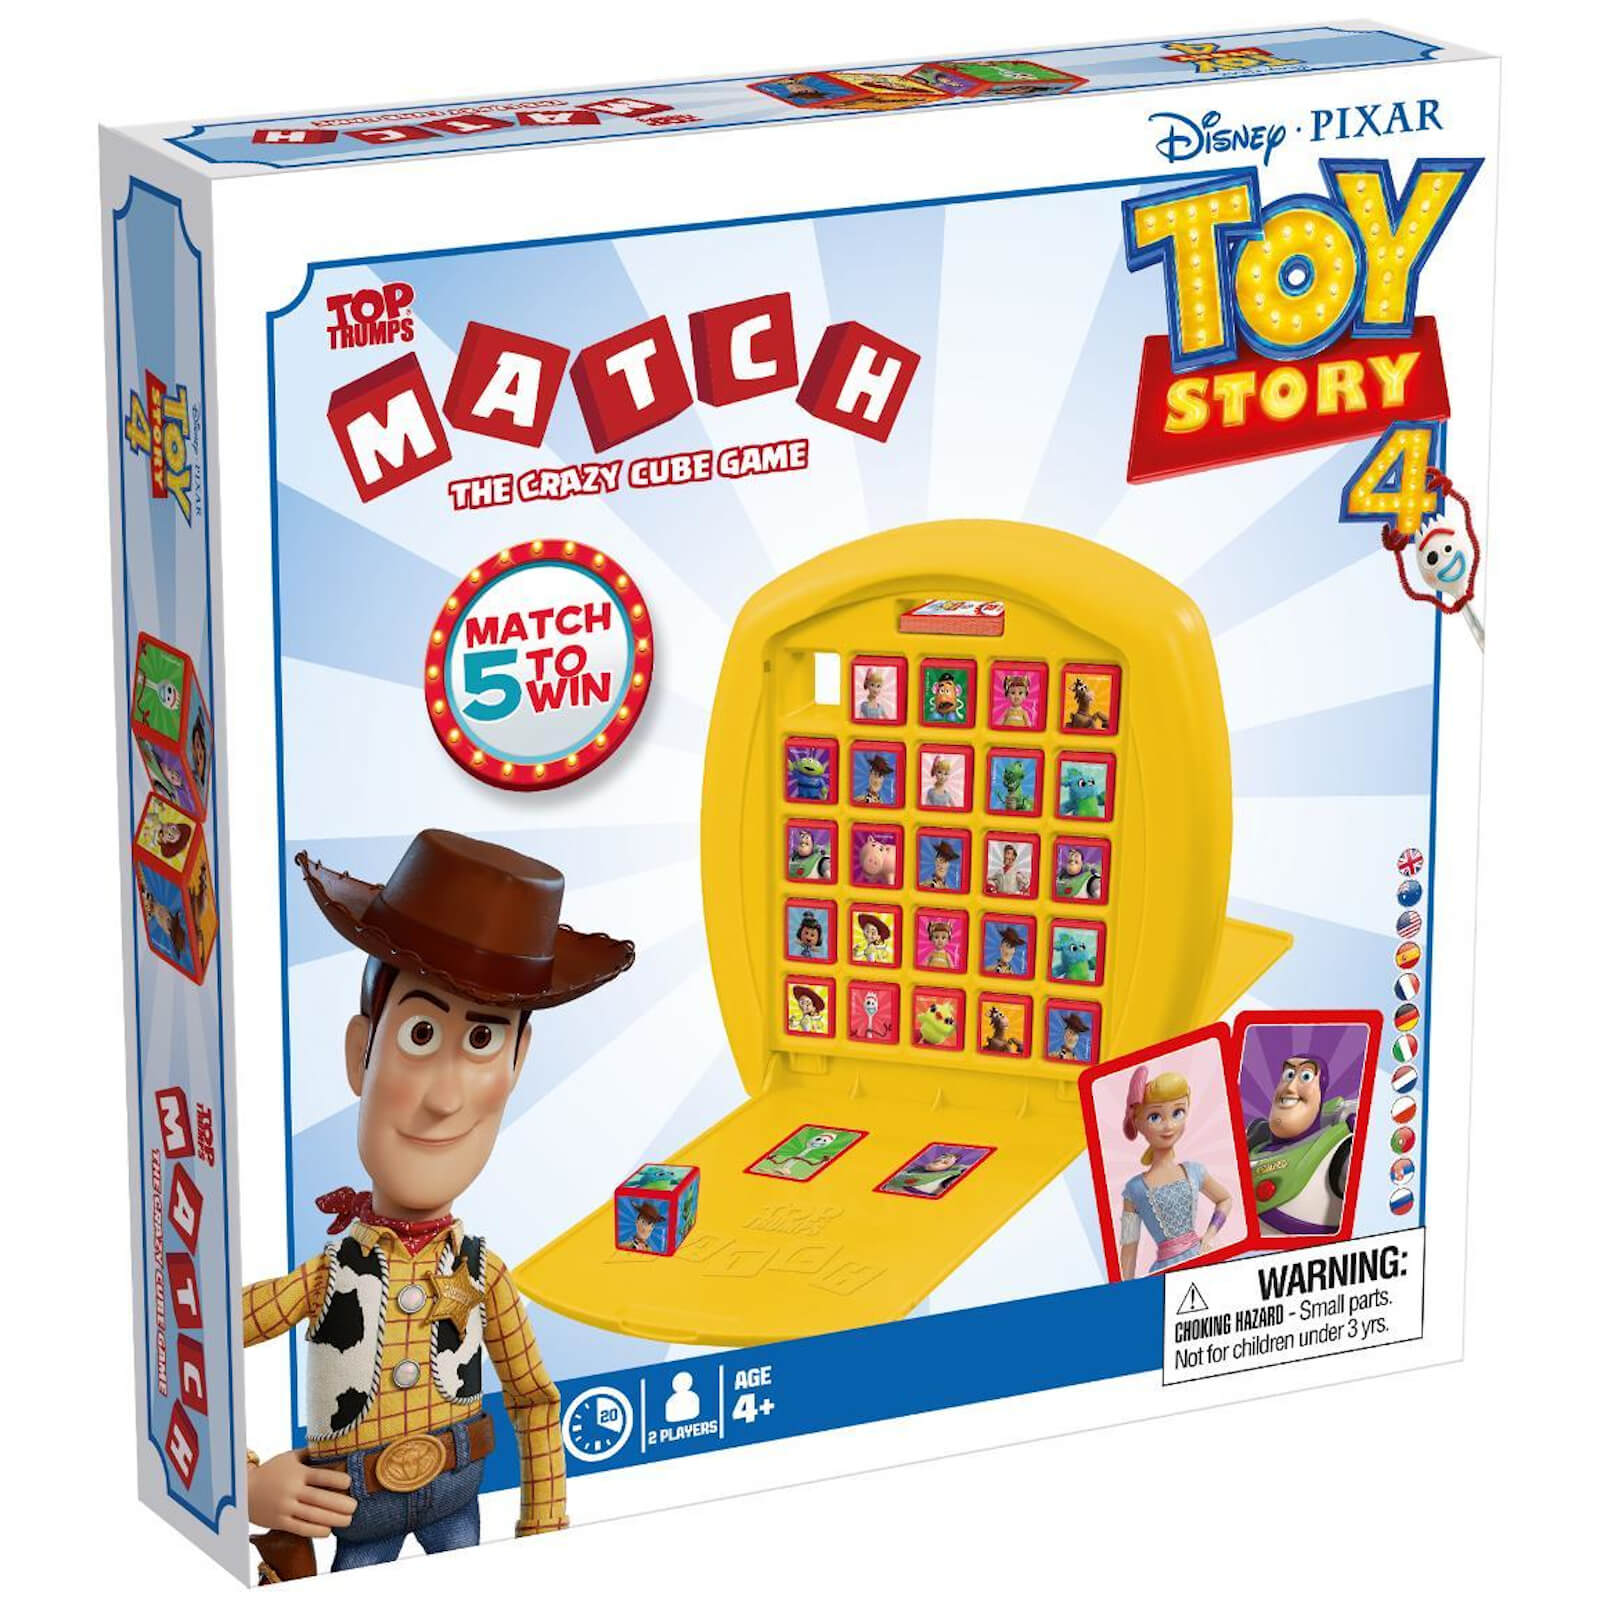 Image of Top Trumps Match Board Game - Toy Story 4 Edition